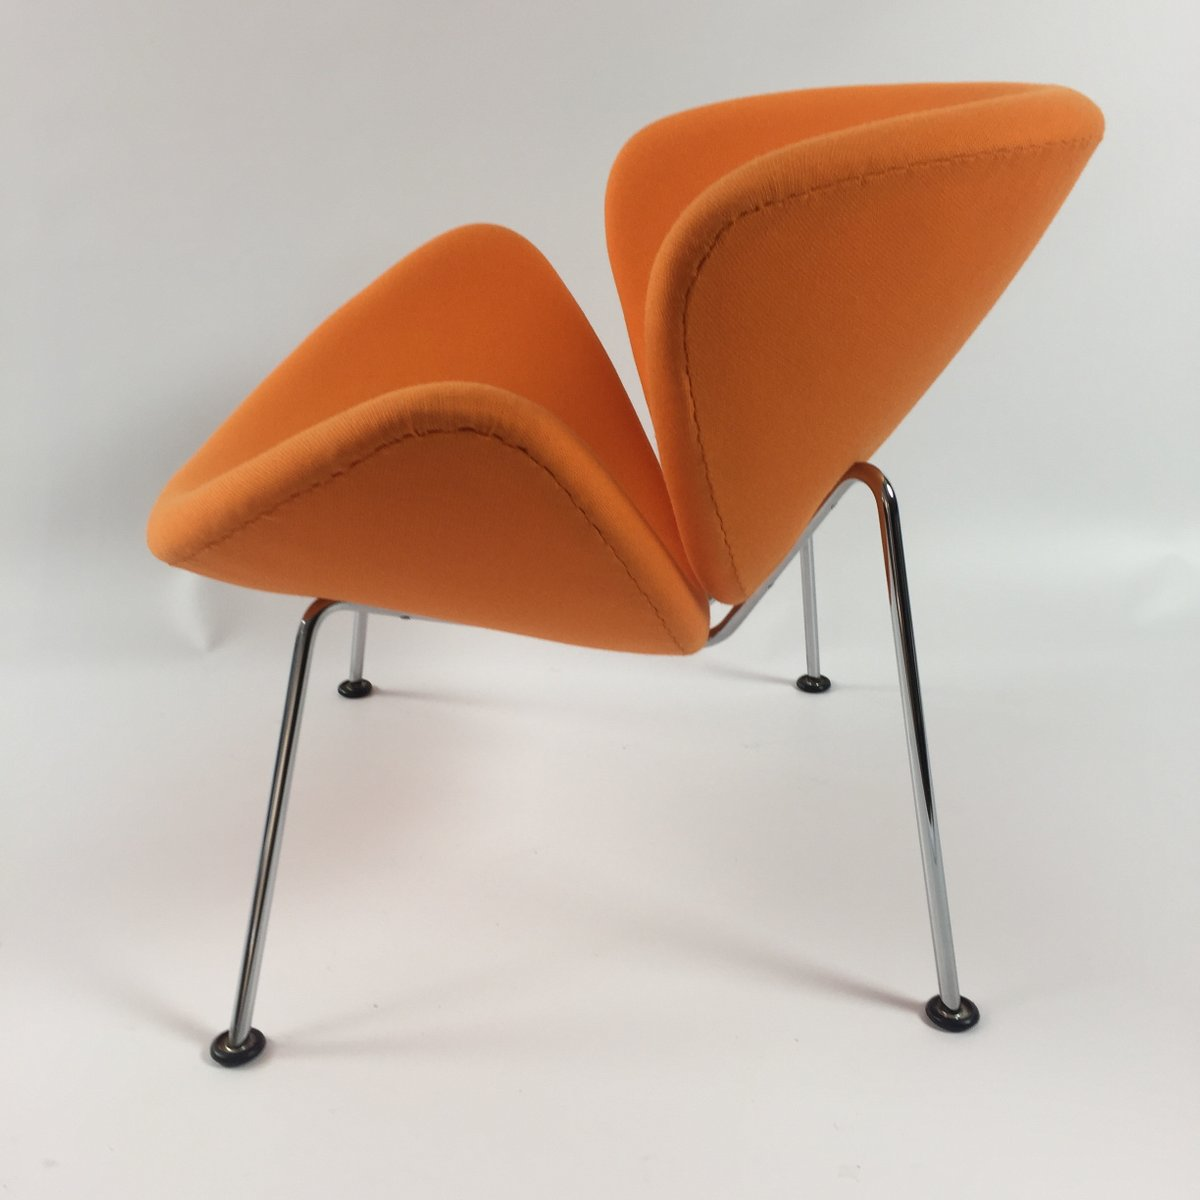 orange slice chair covers and organza bows vintage lounge by pierre paulin for